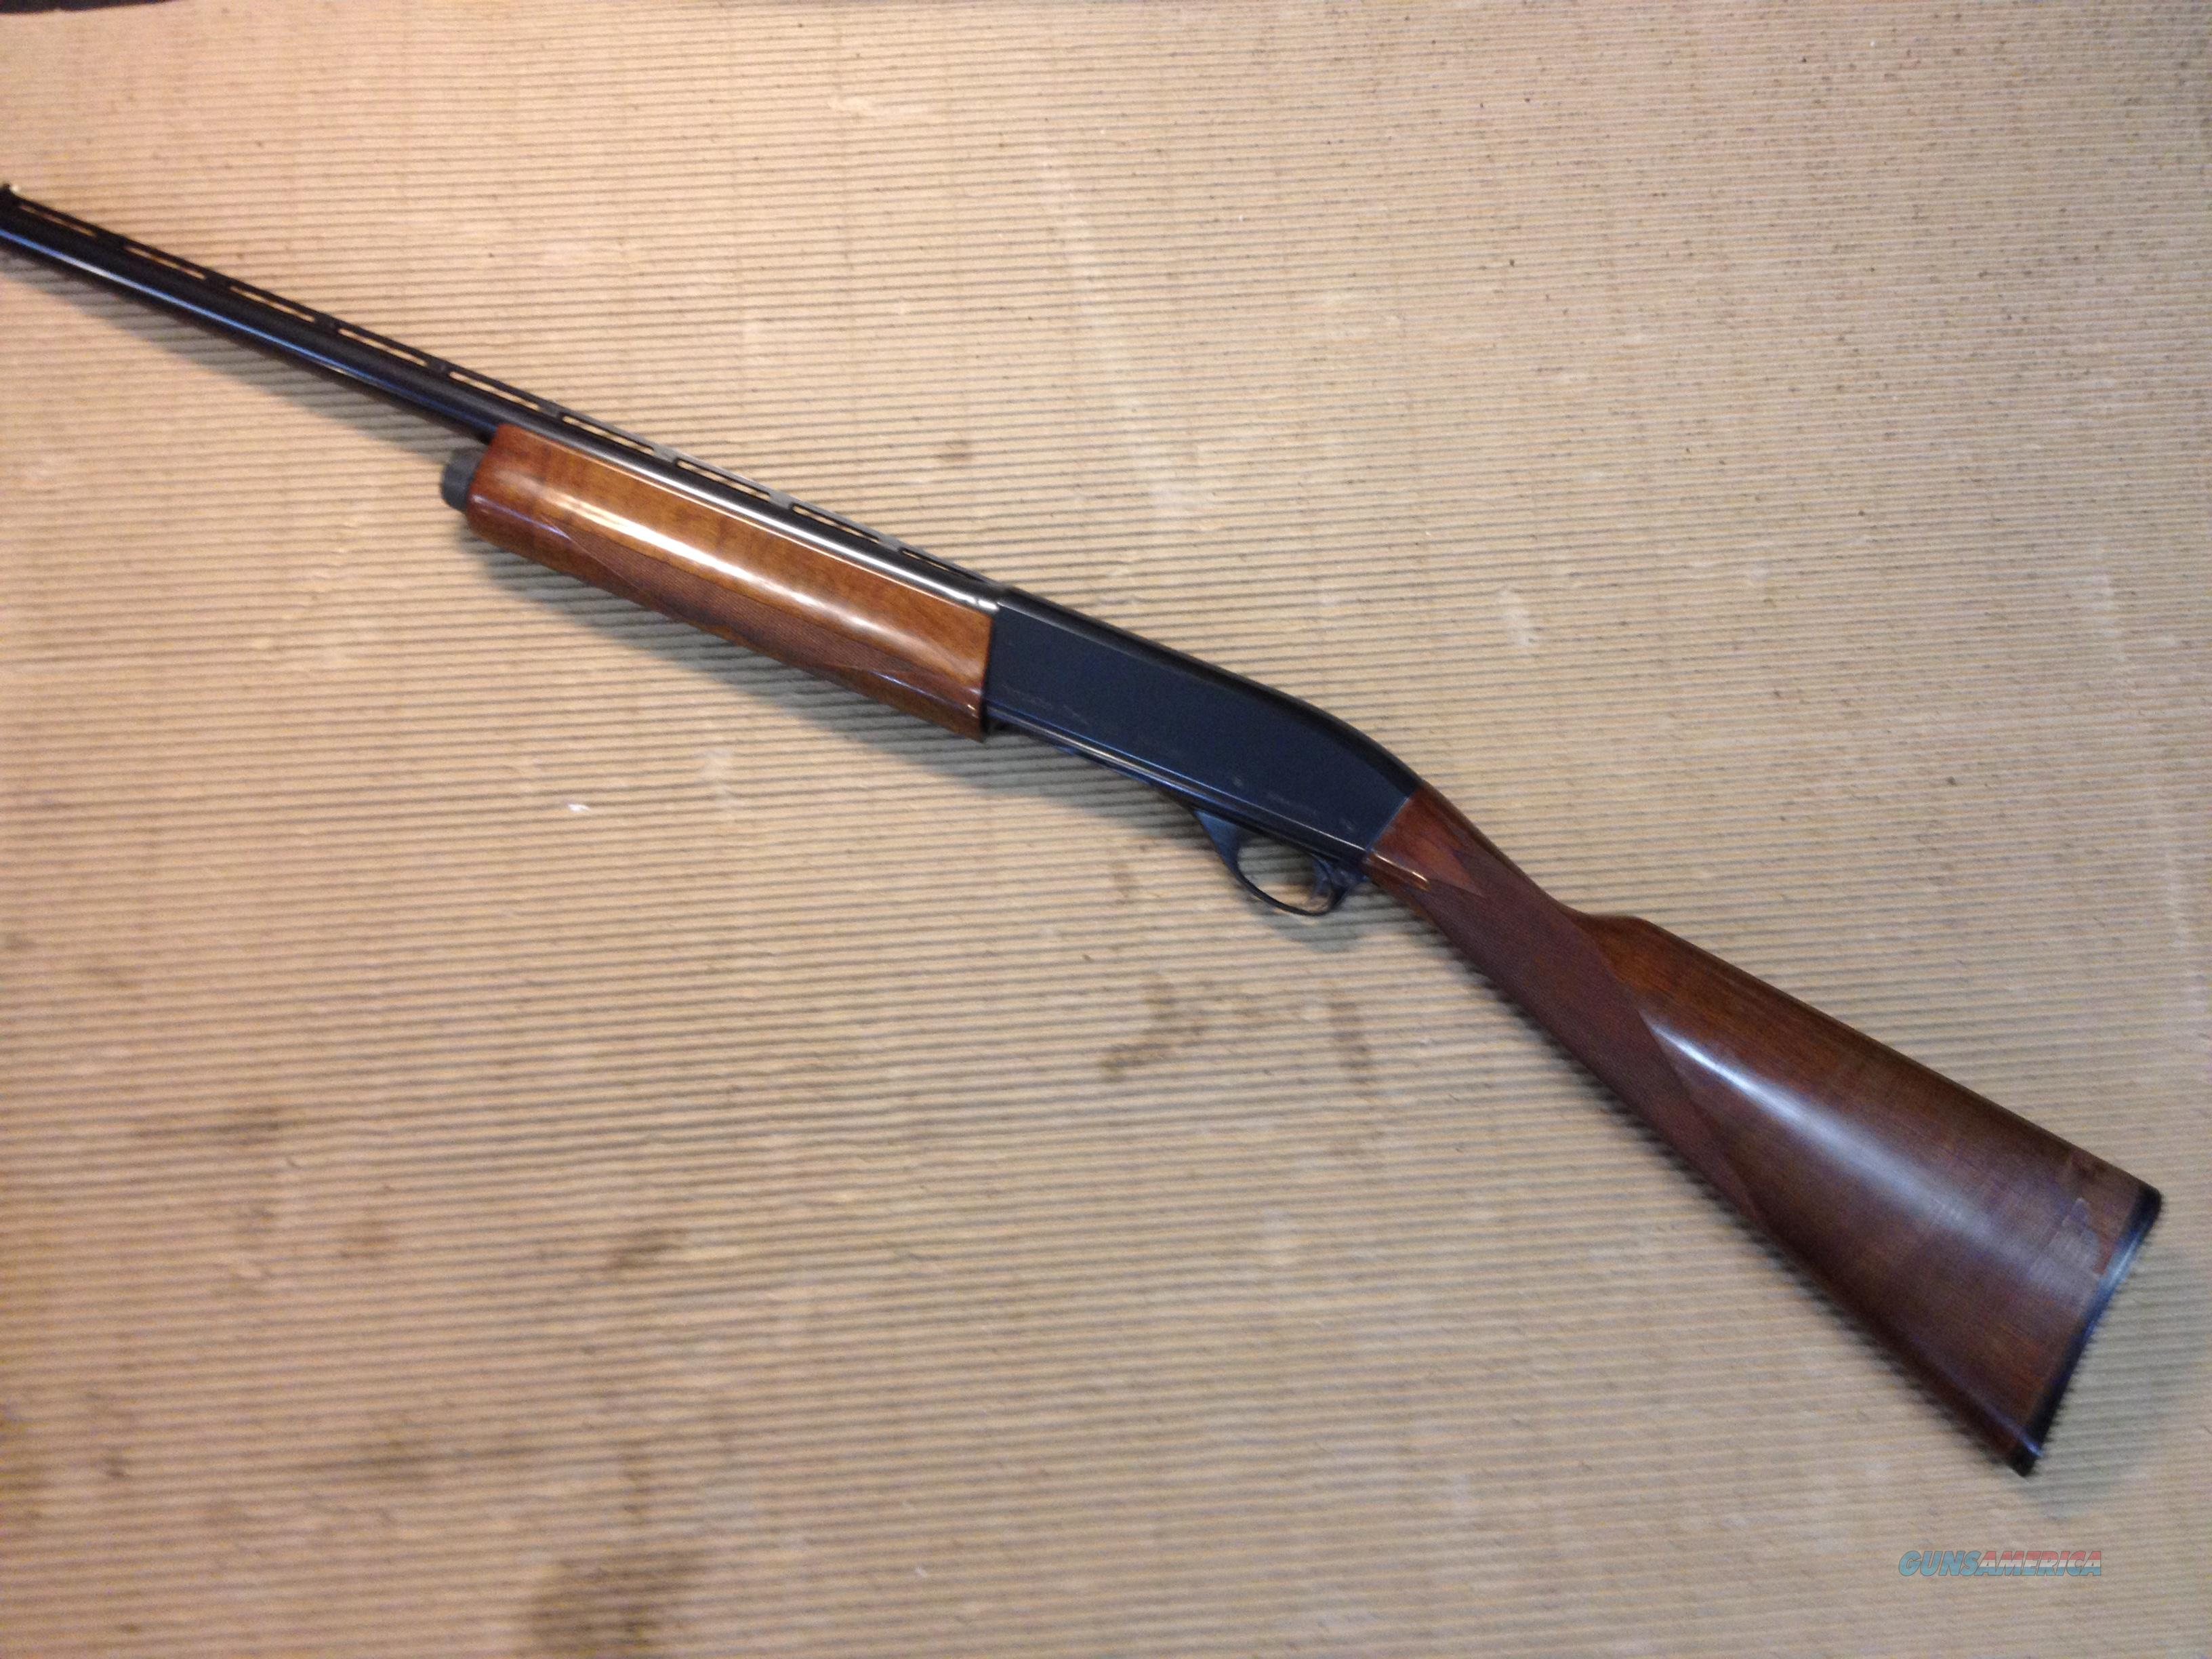 "REM 1187 12GA-3"" Special Purpose, 26""BBL, w/ case    Guns > Shotguns > Remington Shotguns  > Autoloaders > Hunting"